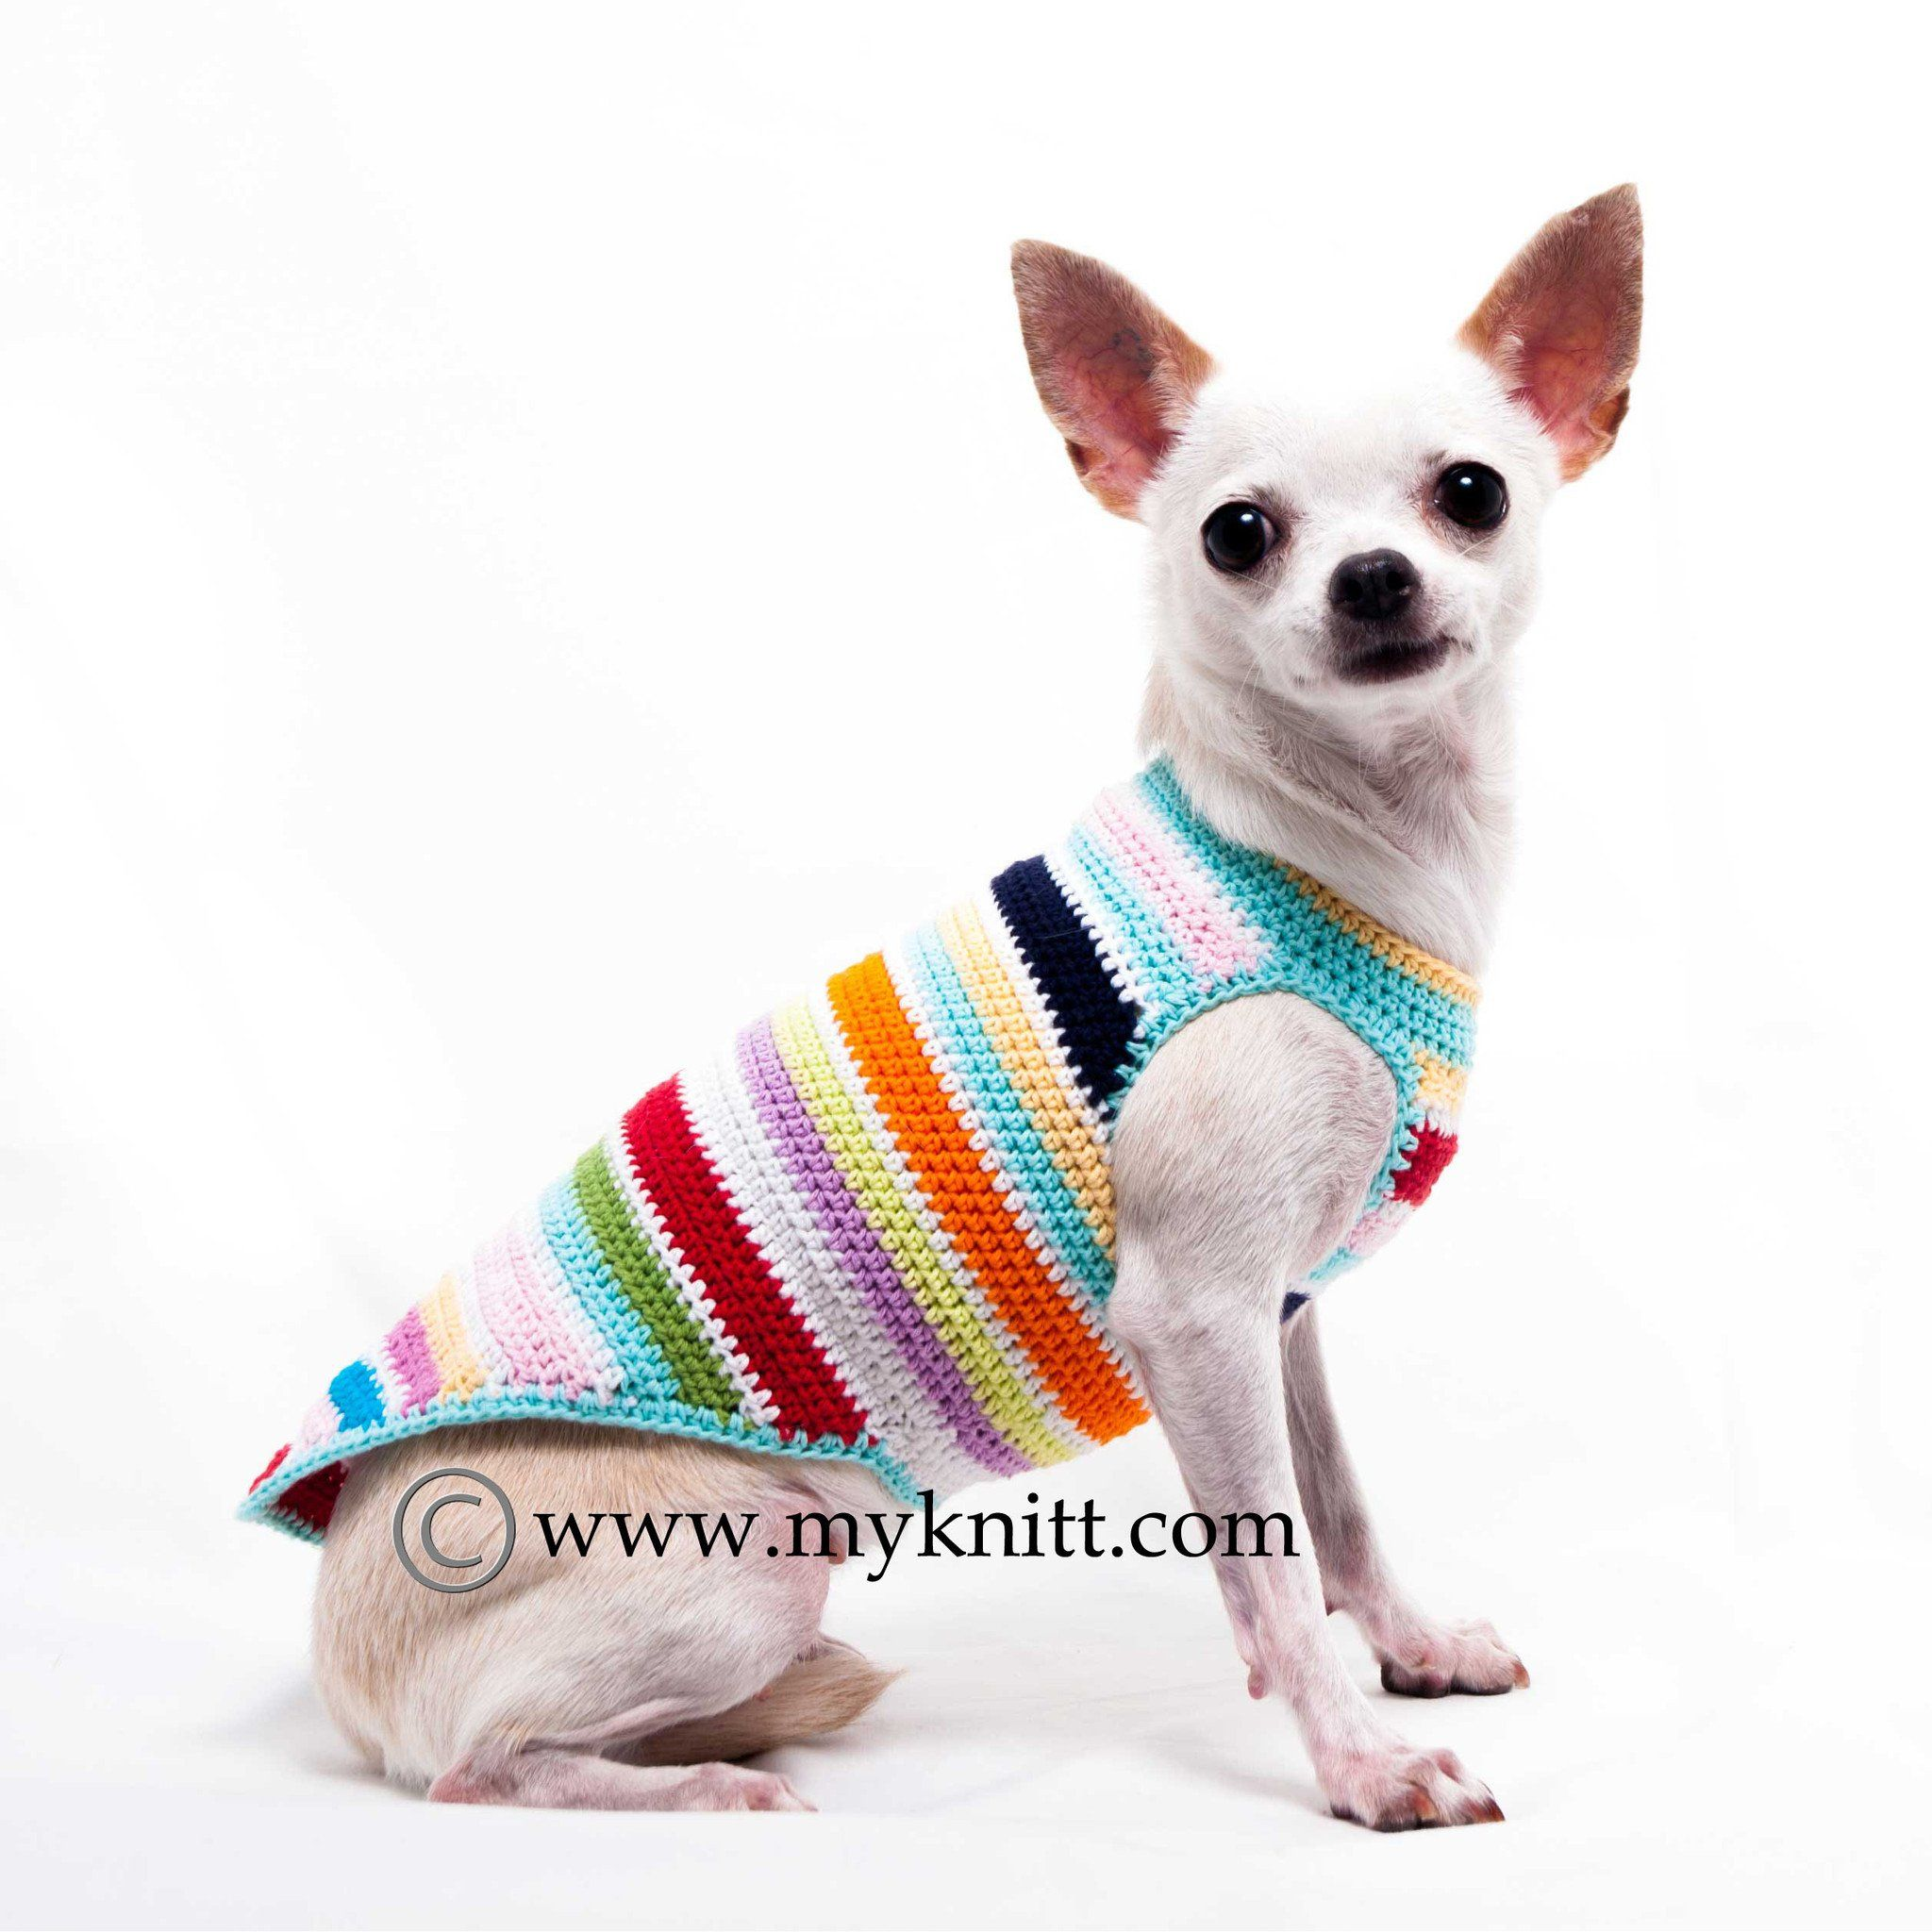 Colorful Cute Dog Clothes Cotton Handmade Crochet Dk995 Cute Dog